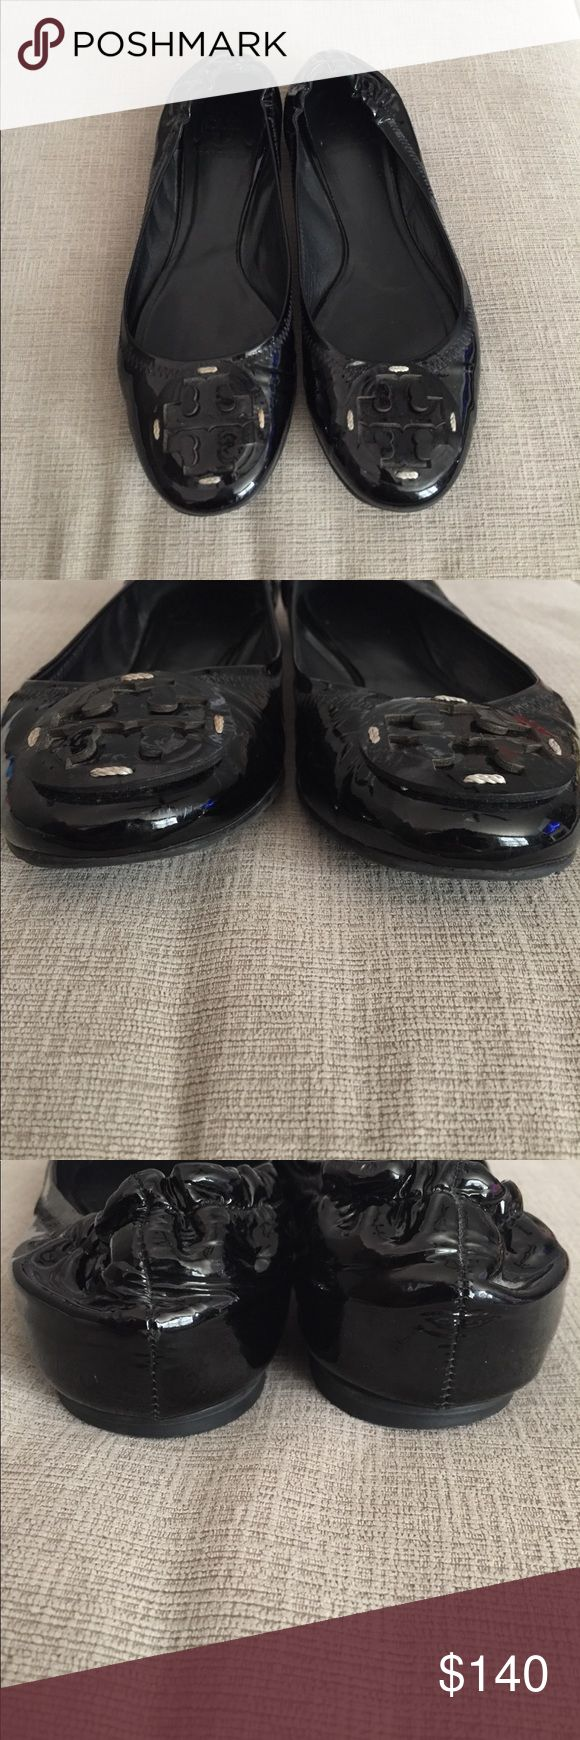 Tory Burch Reva Ballet Flats Patent Leather Reva flats.  Fantastic condition.  Extremely minor little dings from normal wear but nearly unnoticeable.  I have worn these a bunch of times and you can see how quality they are and how long they will last.  Well made and worth the cost.... I have four pair of this exact flat 🙂 Tory Burch Shoes Flats & Loafers